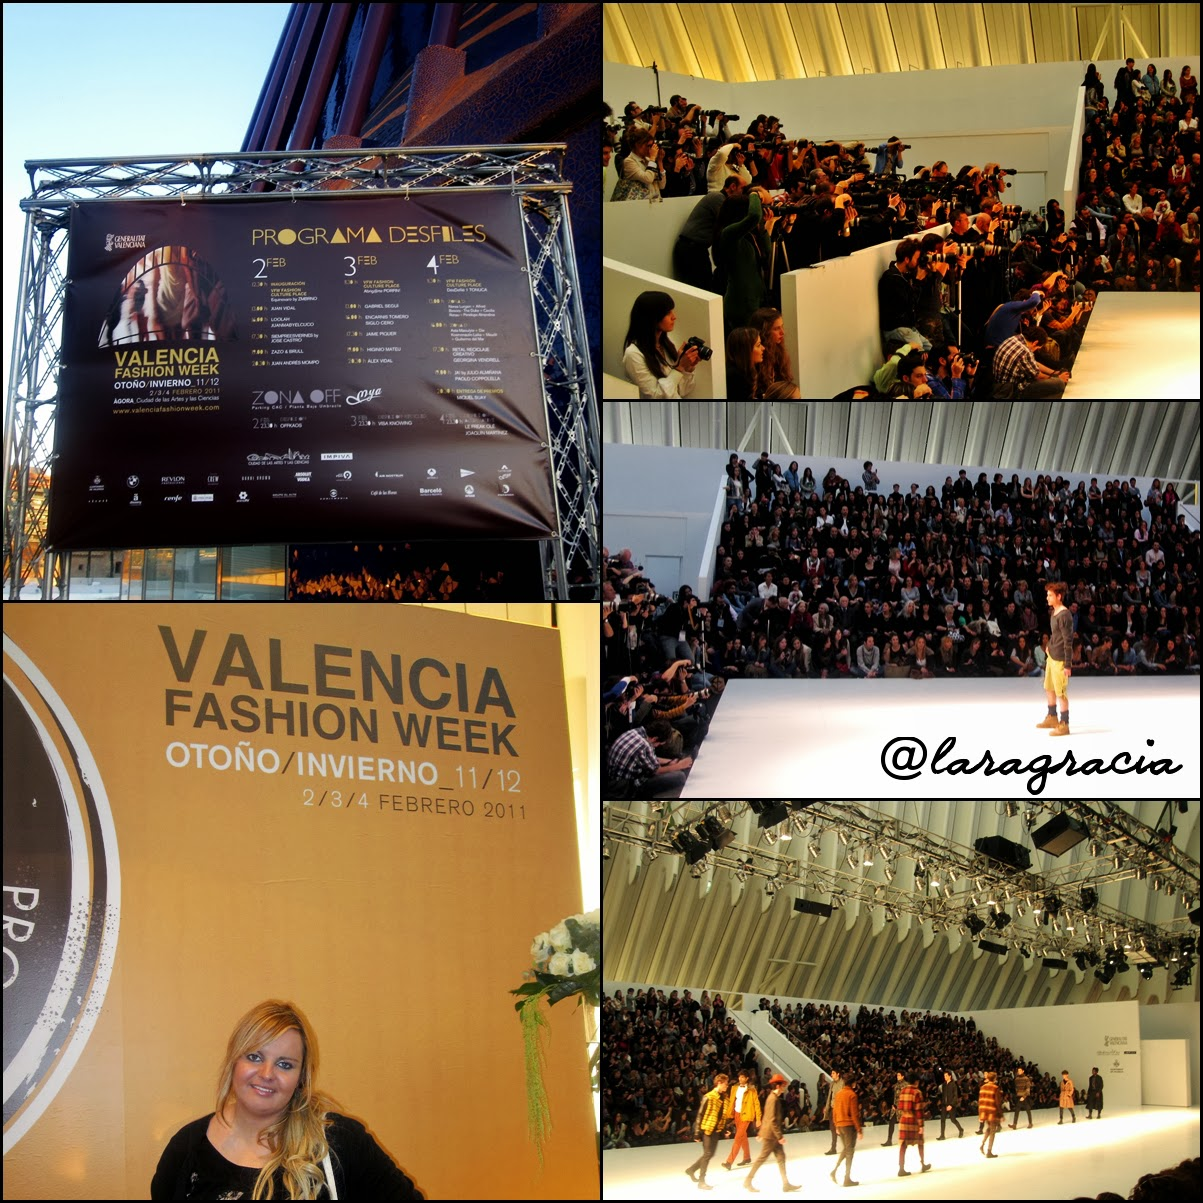 LARA GRACIA-VALENCIA FASHION WEEK AGORA